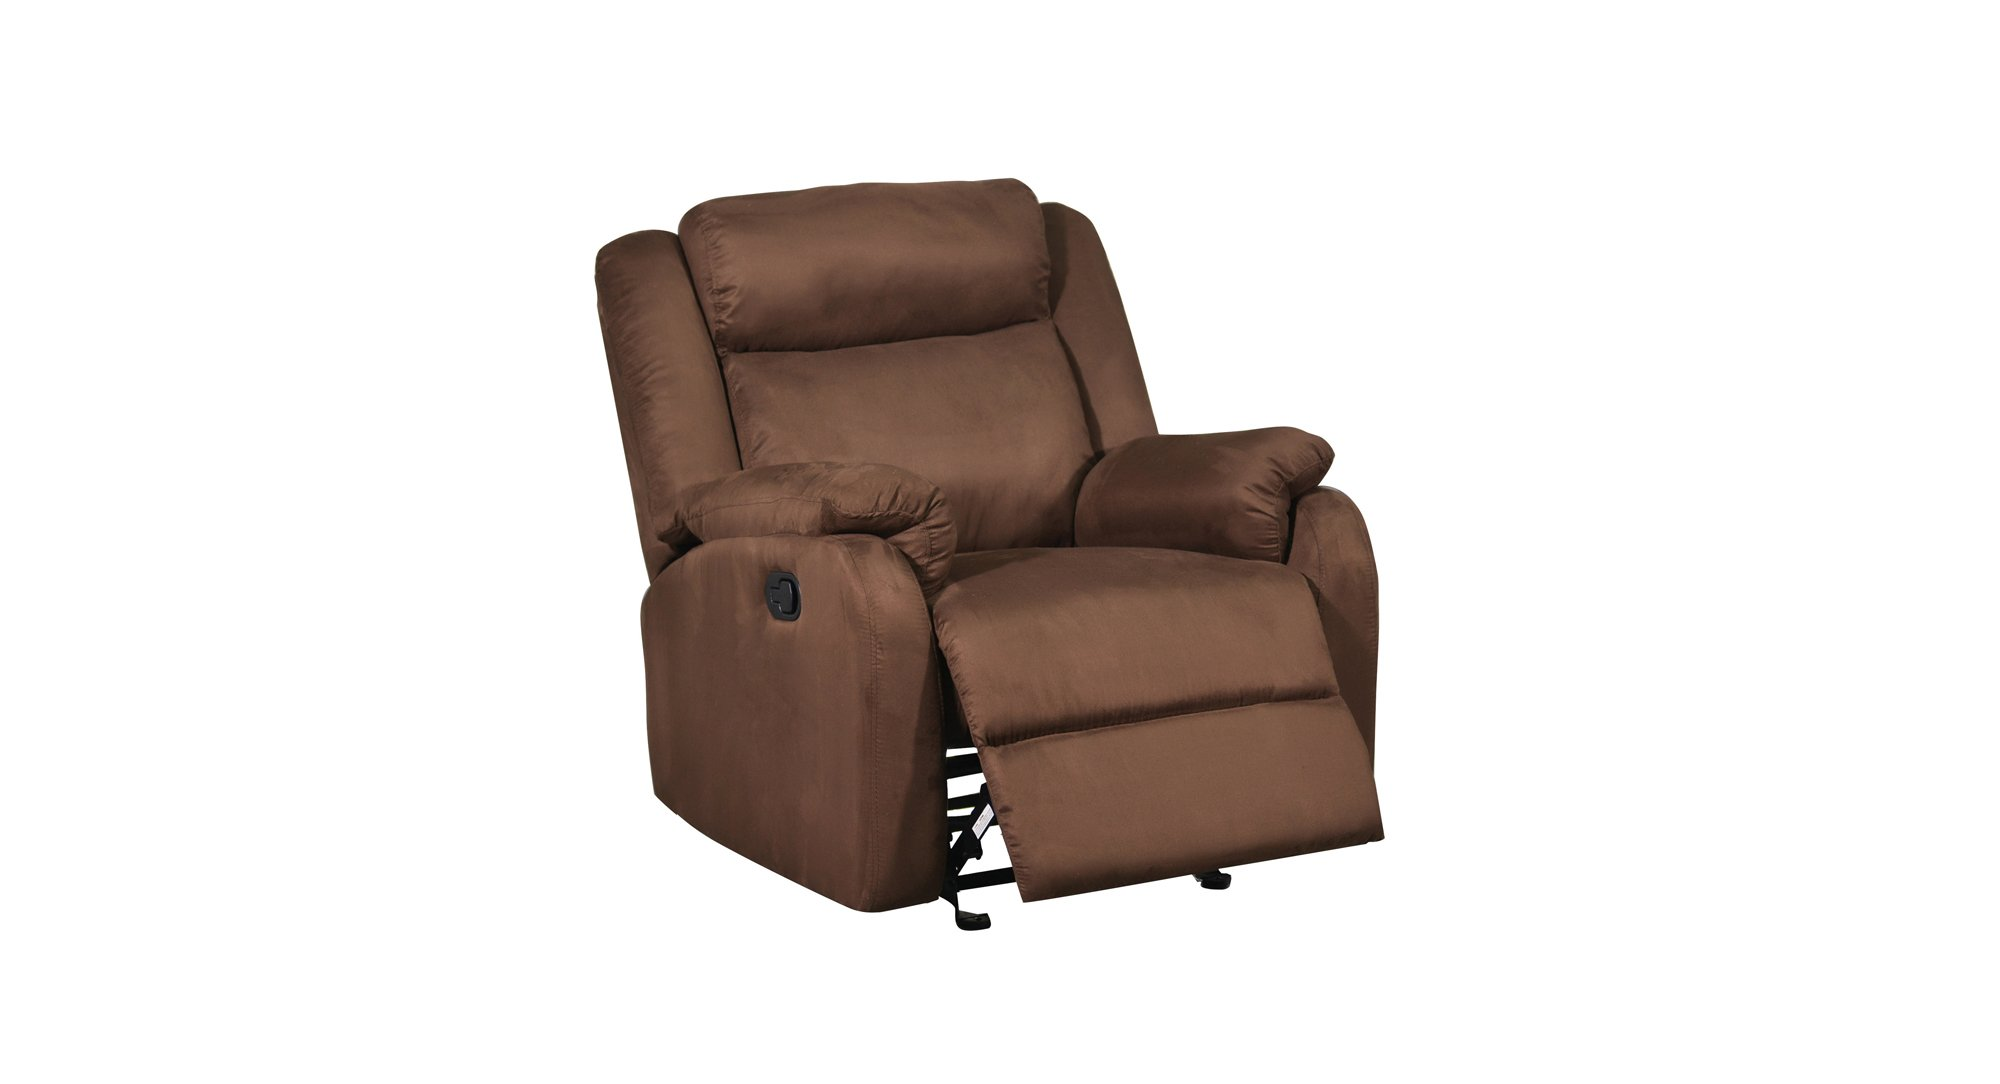 U8303 Chocolate Fabric Glider Reclining Chair by Global